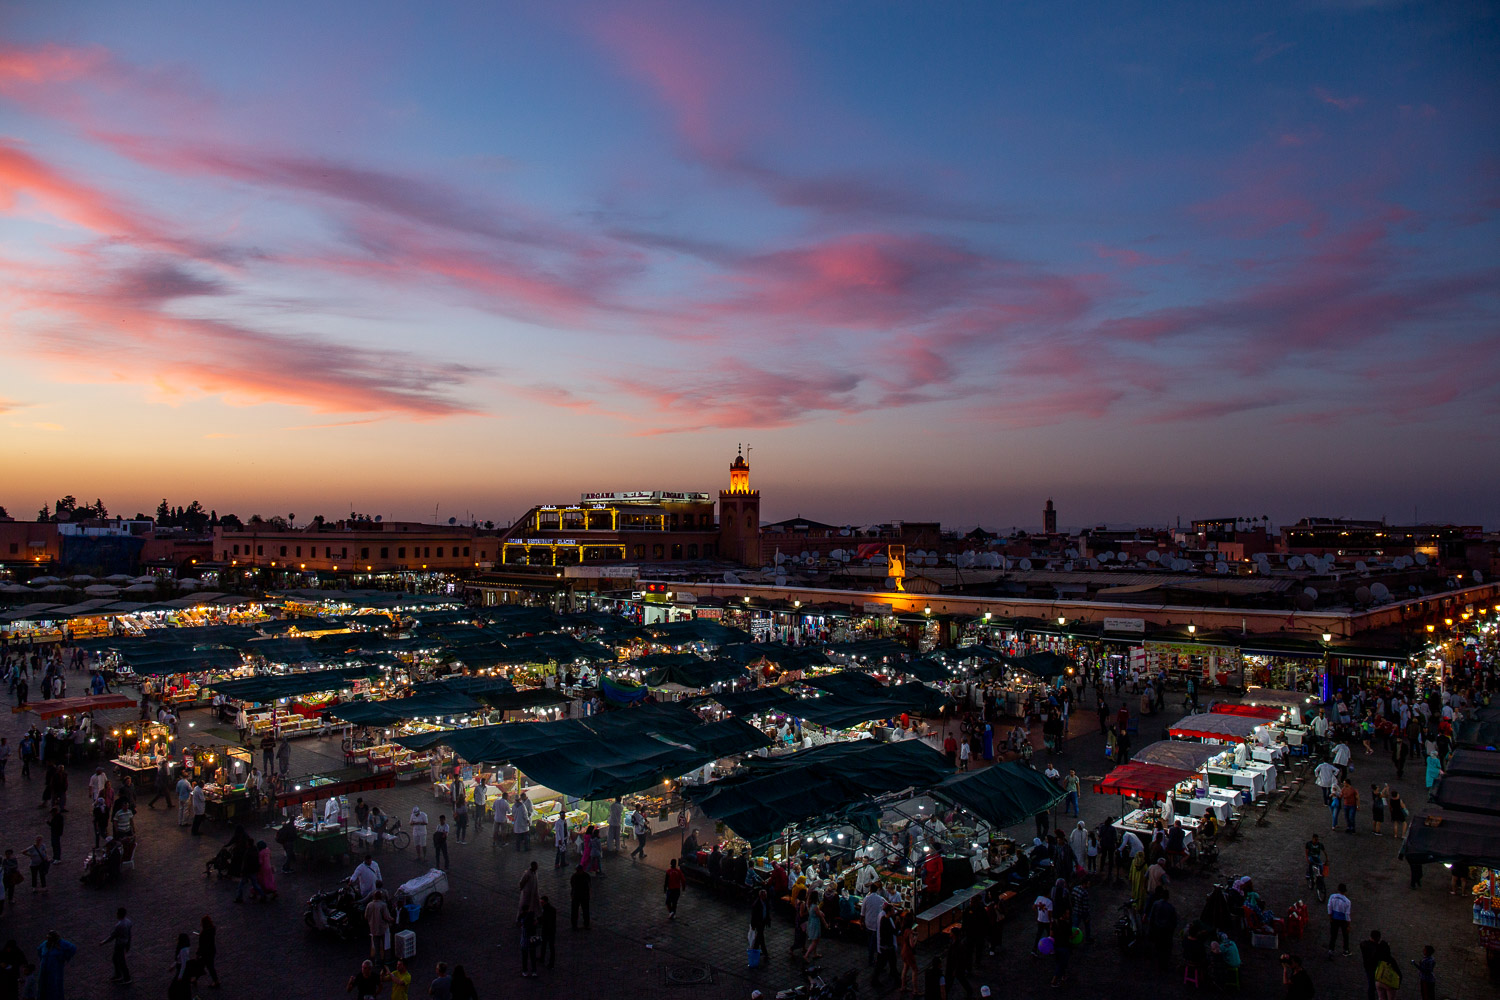 Sunset over Marrakech